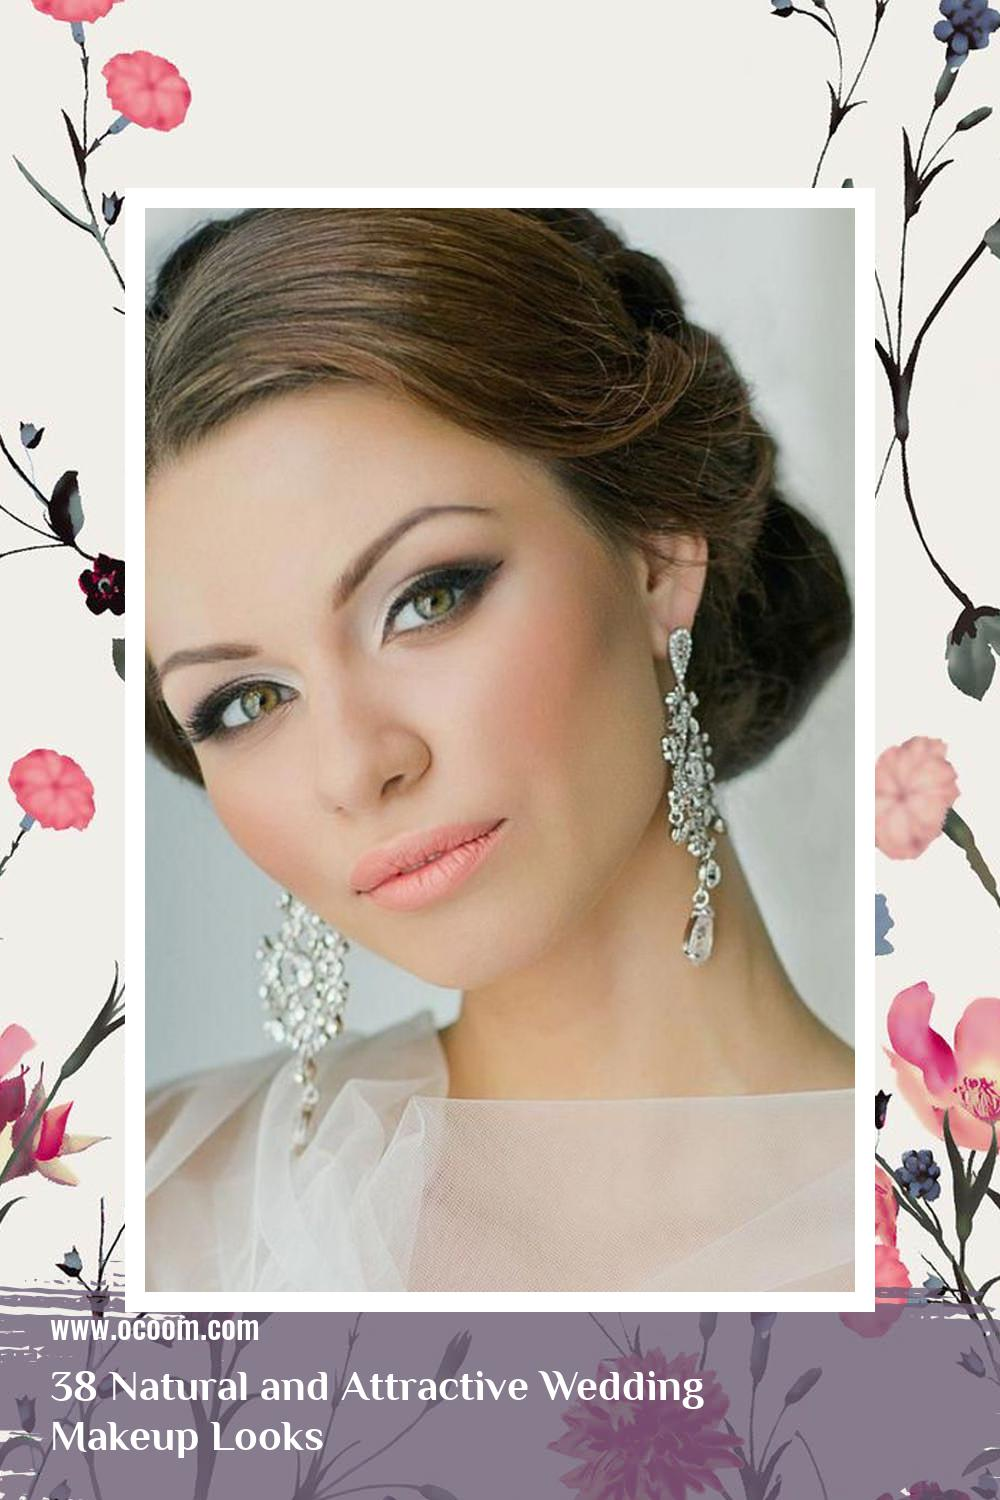 38 Natural and Attractive Wedding Makeup Looks 28